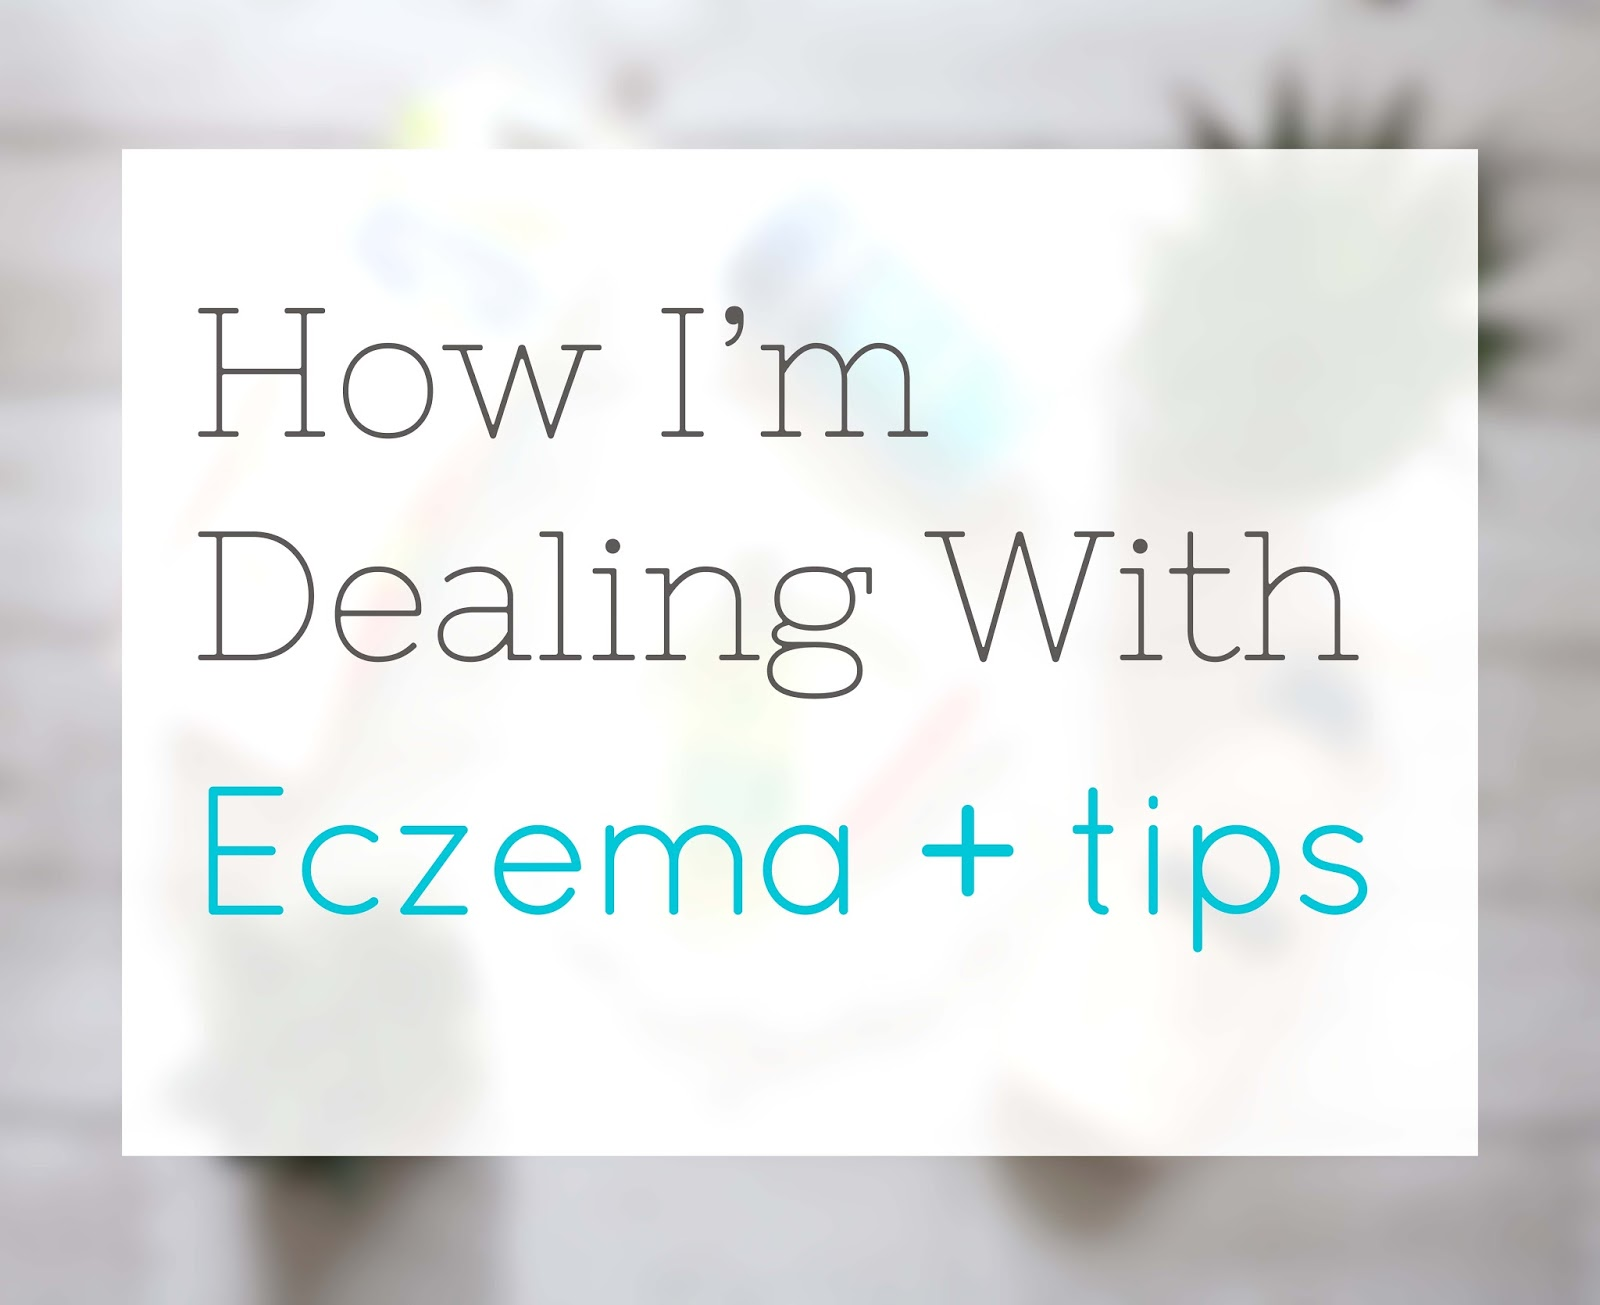 How I'm dealing with eczema and tips